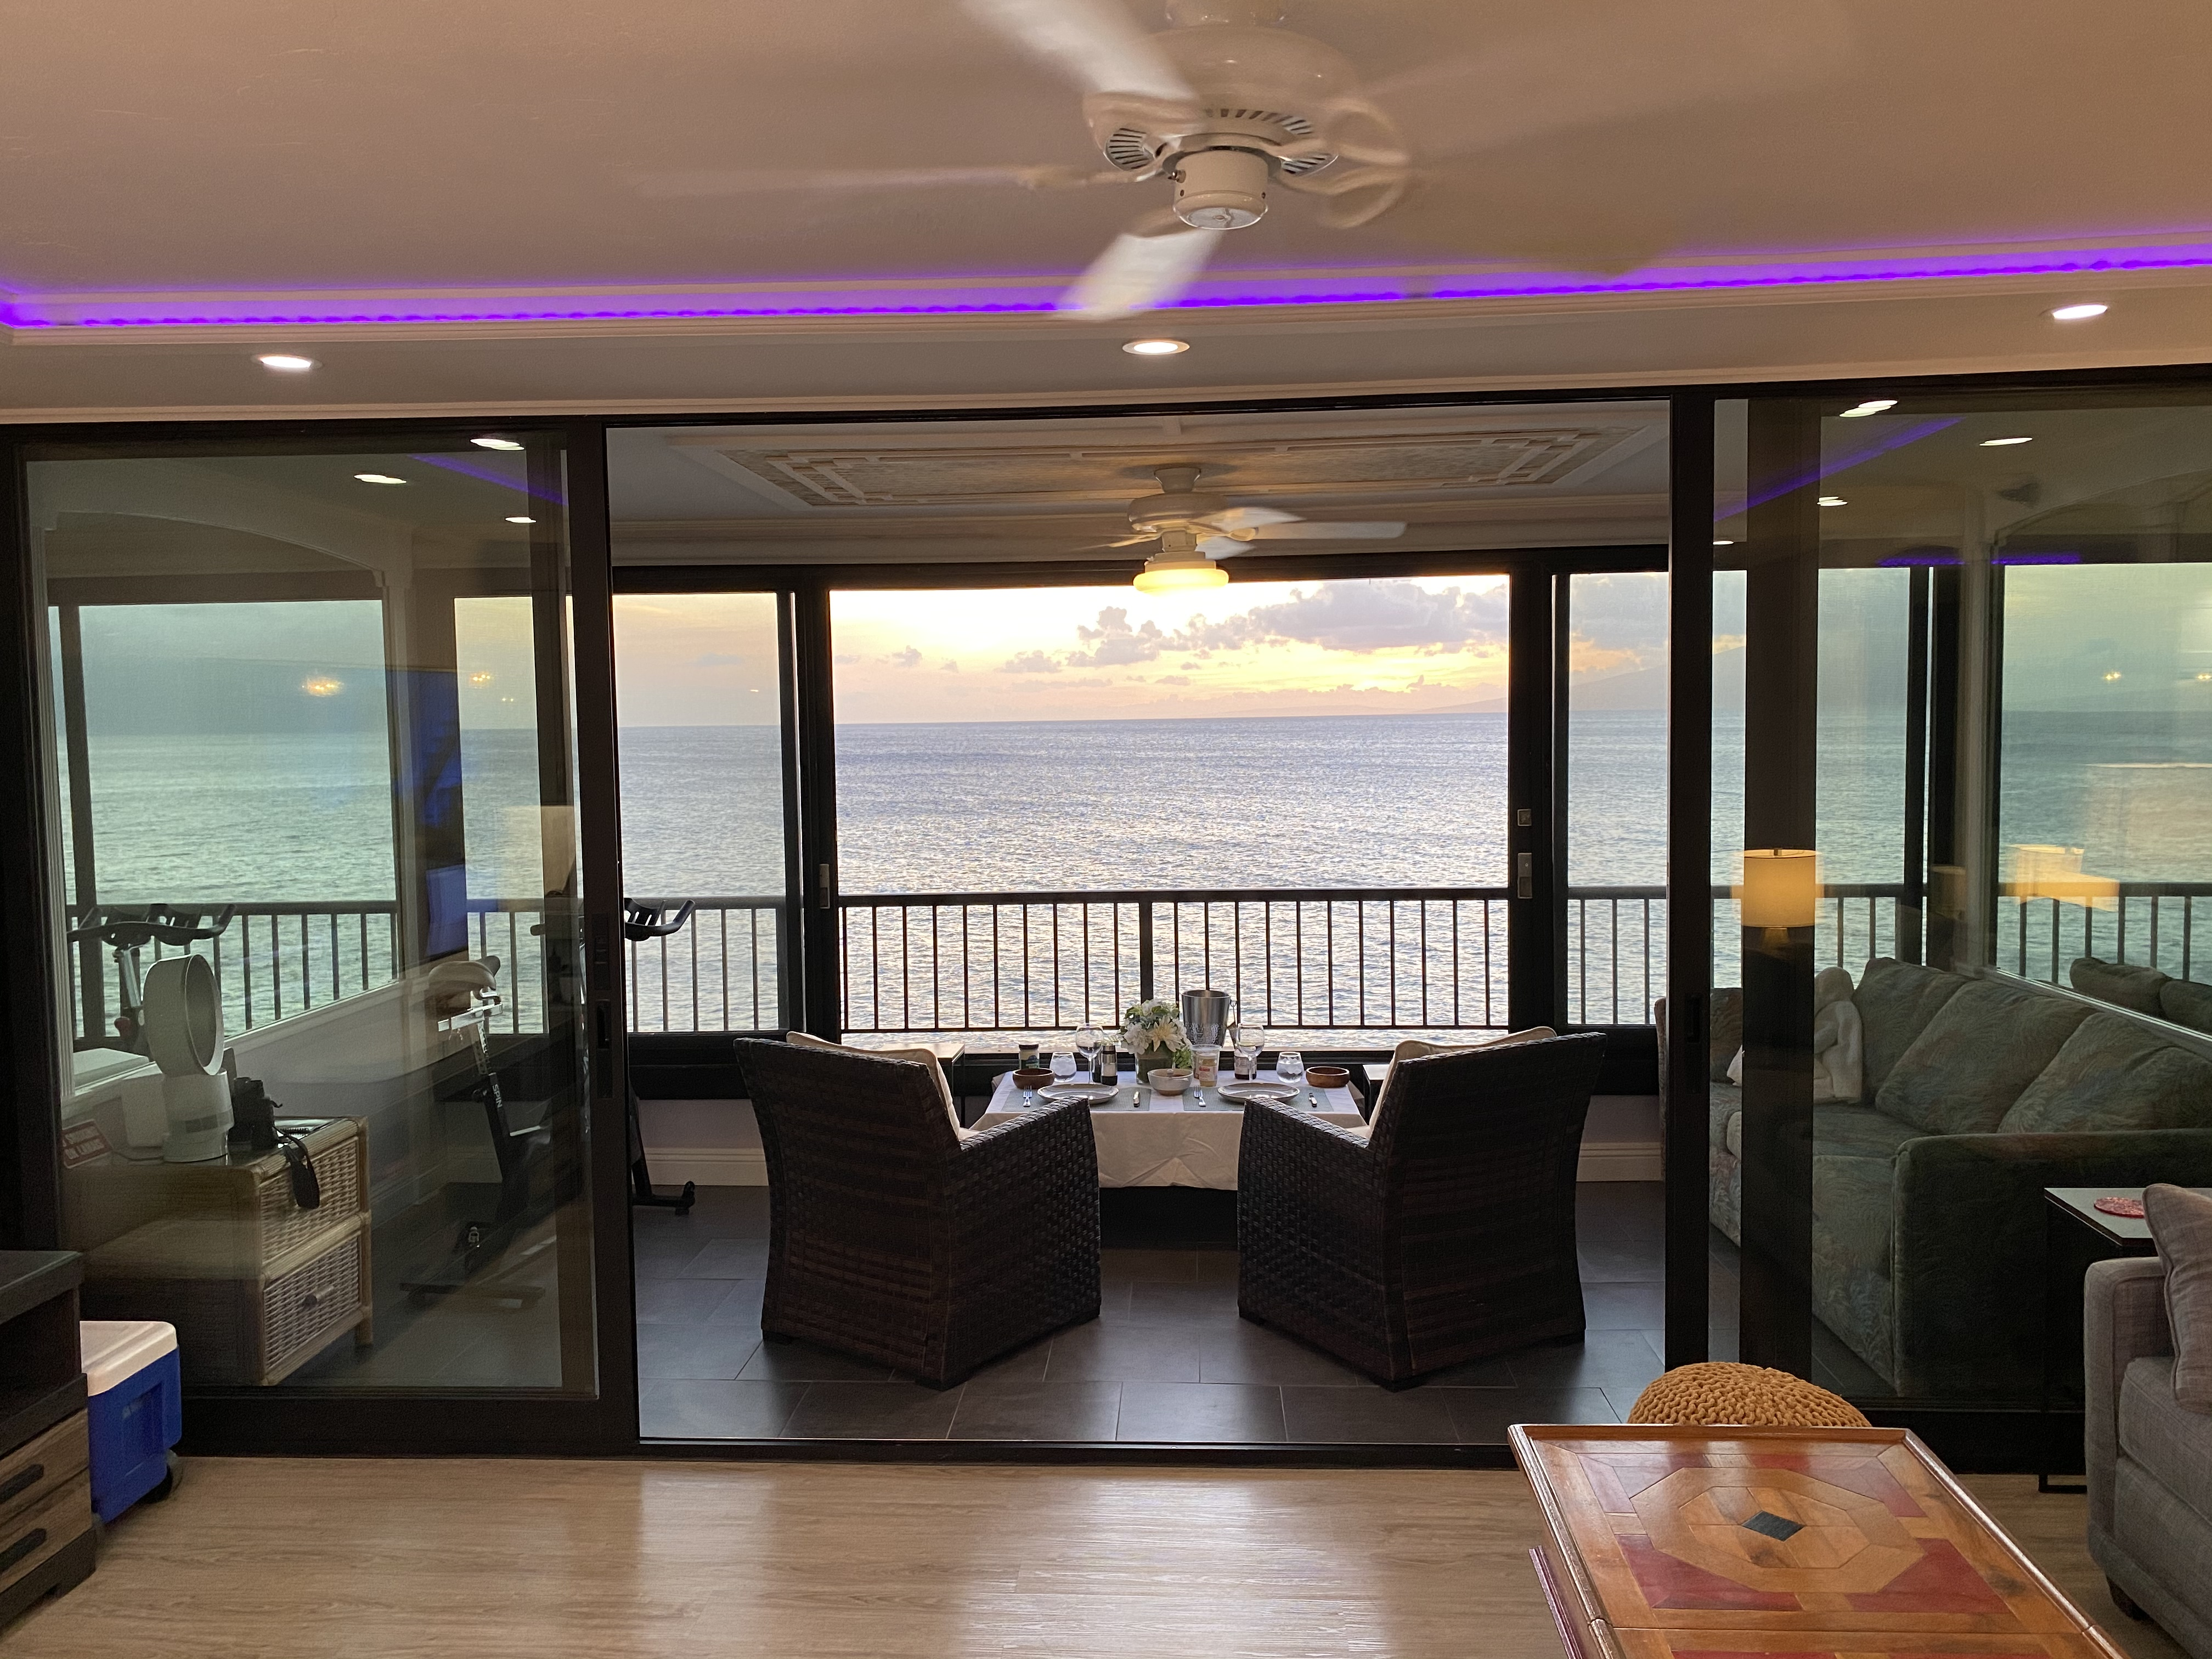 MauiKai 405 - Oceanfront Bliss!! - Condominiums for Rent in Lahaina, Hawaii,  United States